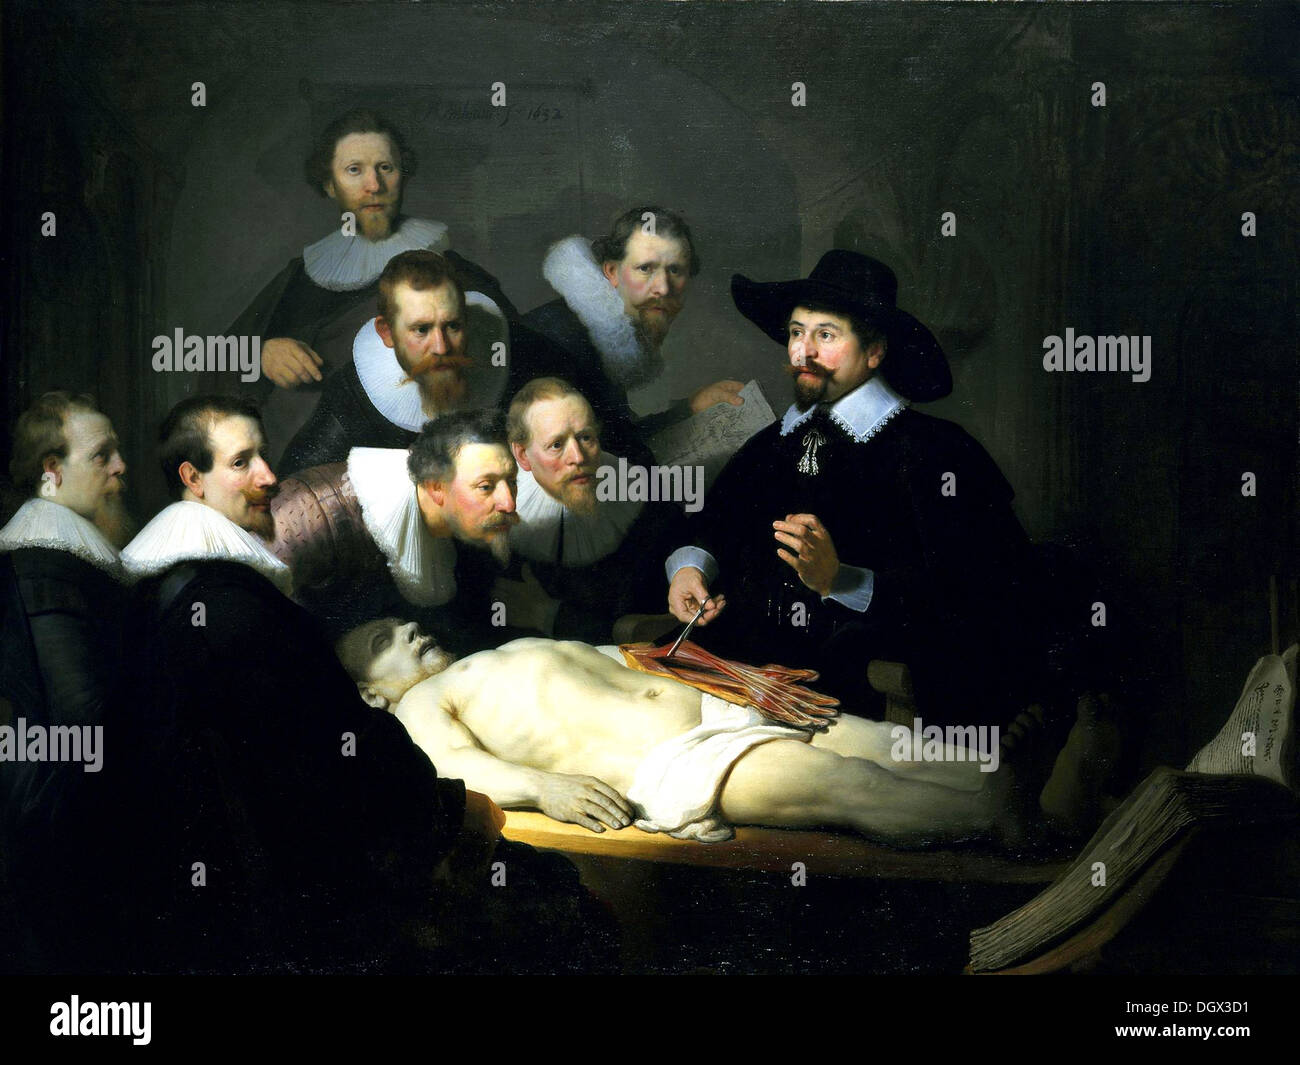 The Anatomy Lesson of Dr. Nicolaes Tulp - by Rembrandt van Rijn, 1632 - Stock Image